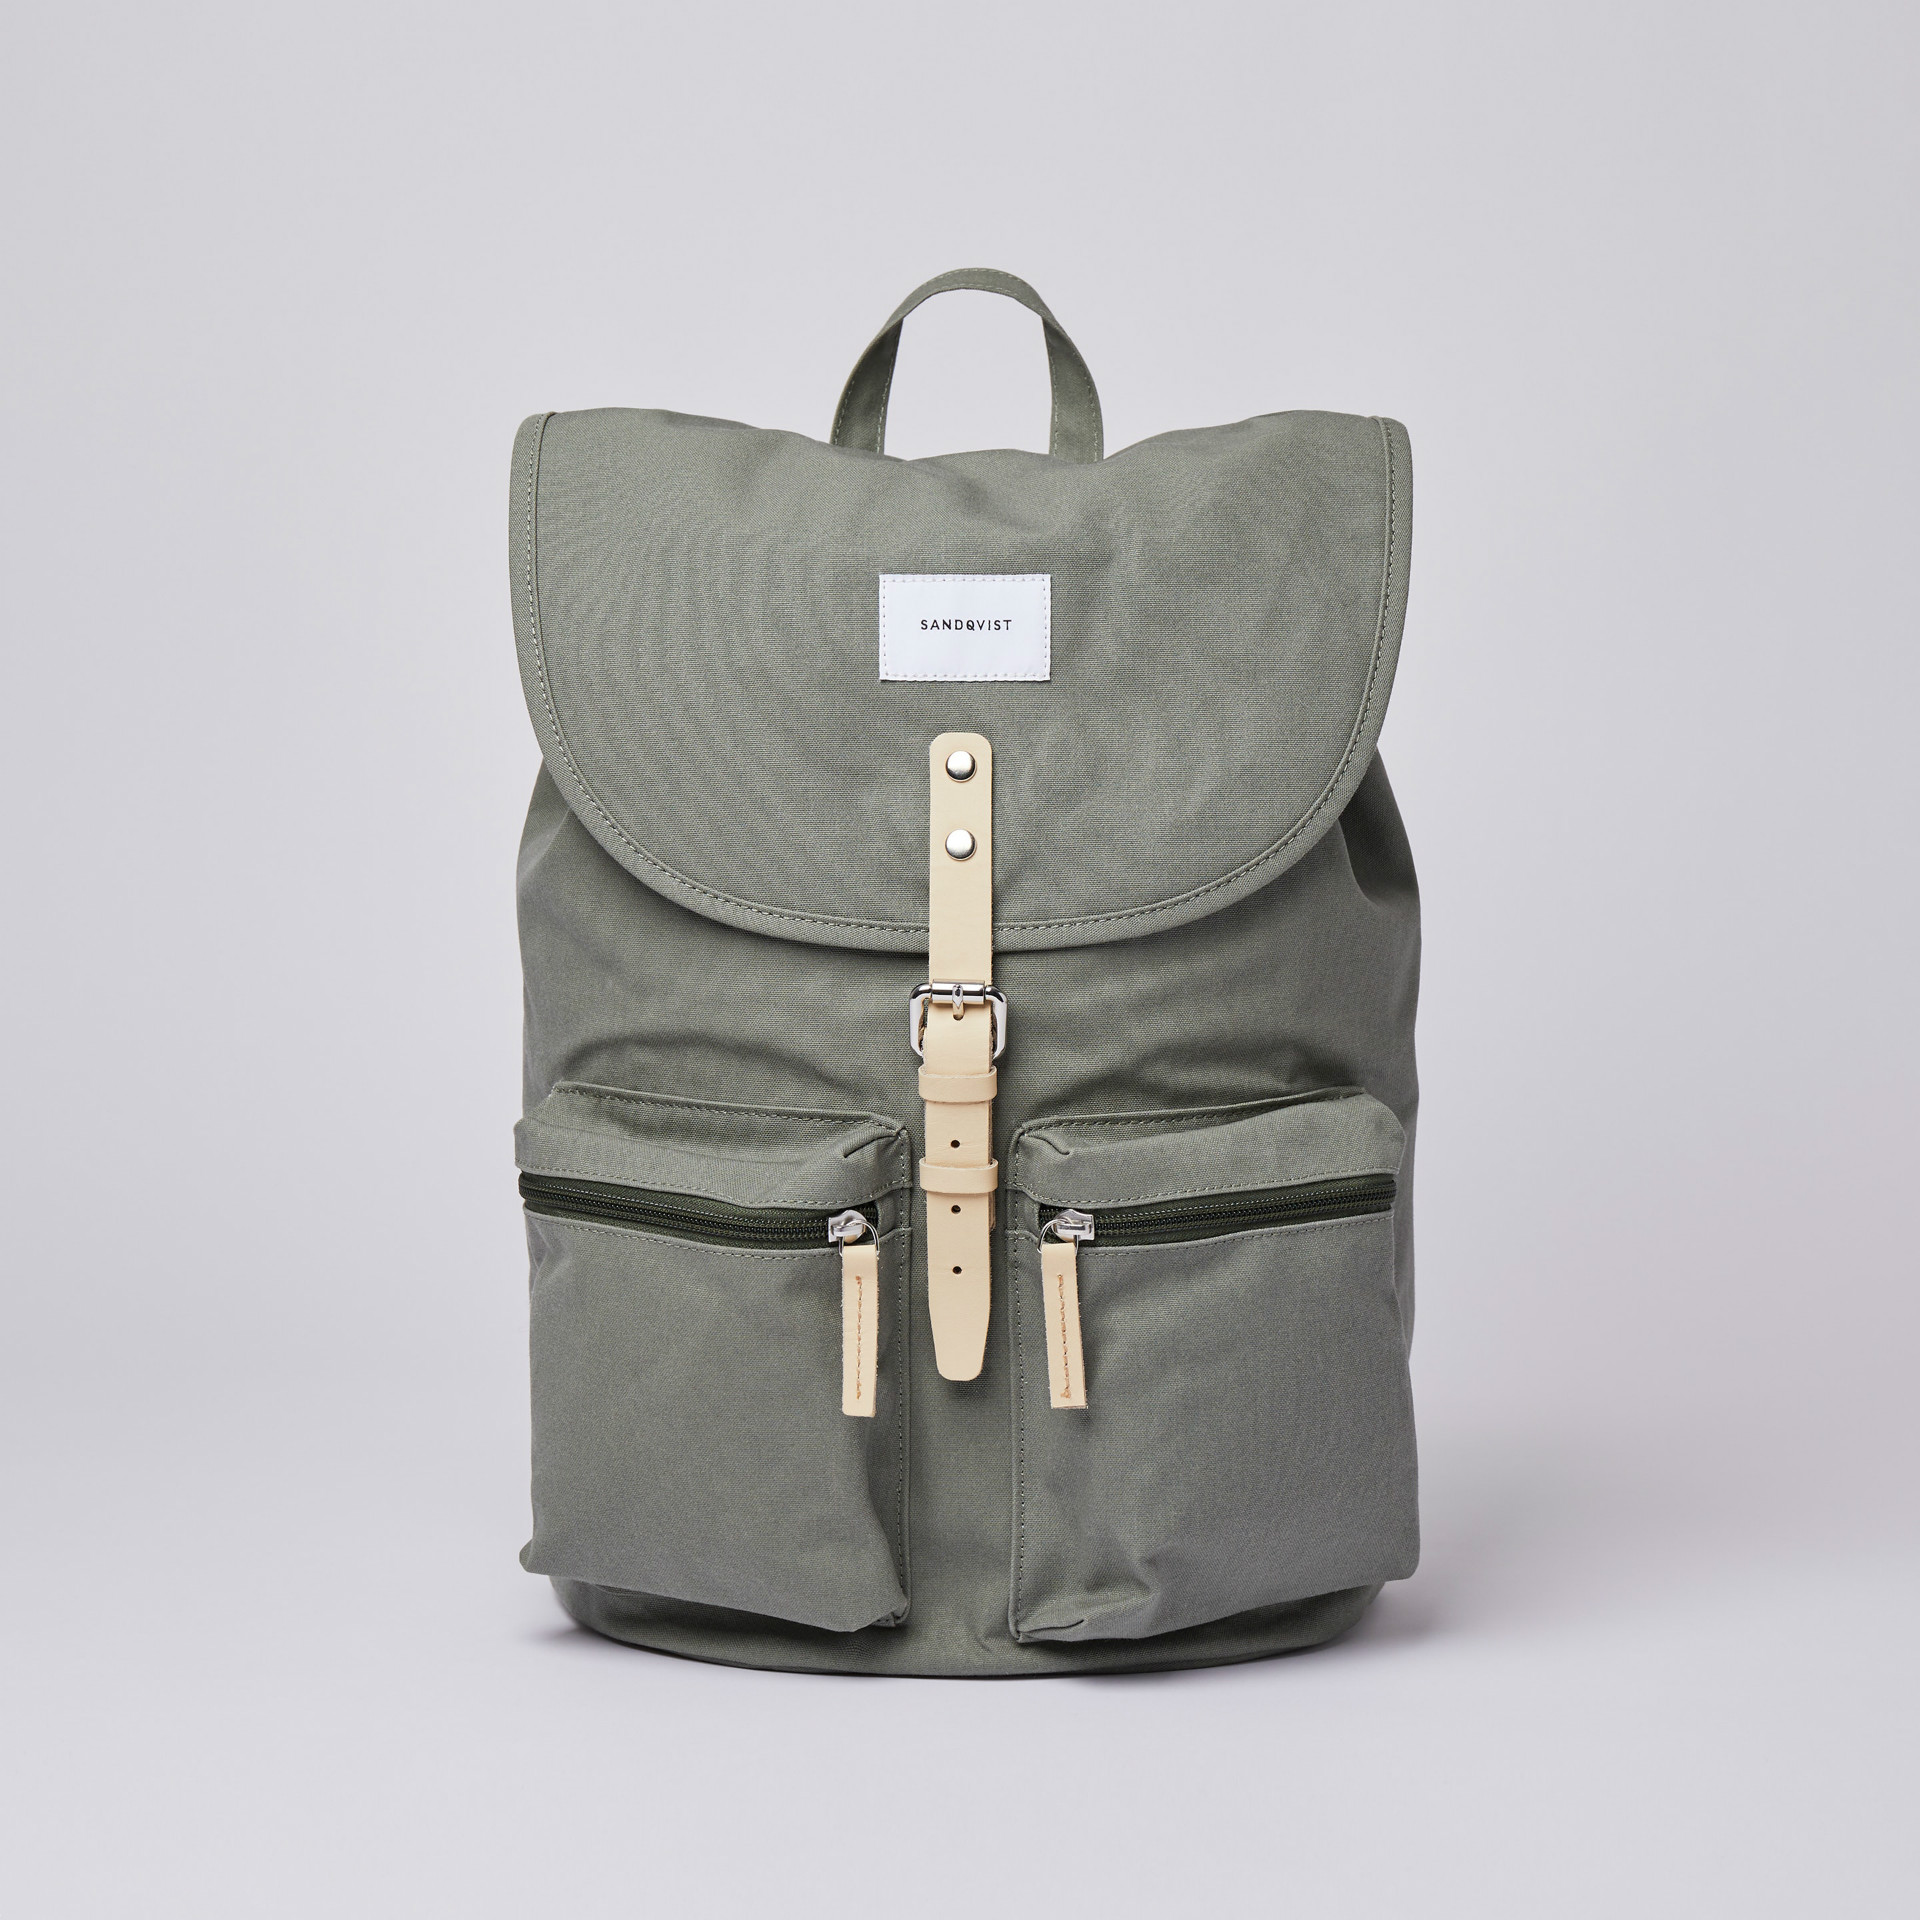 サムネイル:SANDQVIST サンドクヴィスト ROALD Dusty green with natural leather